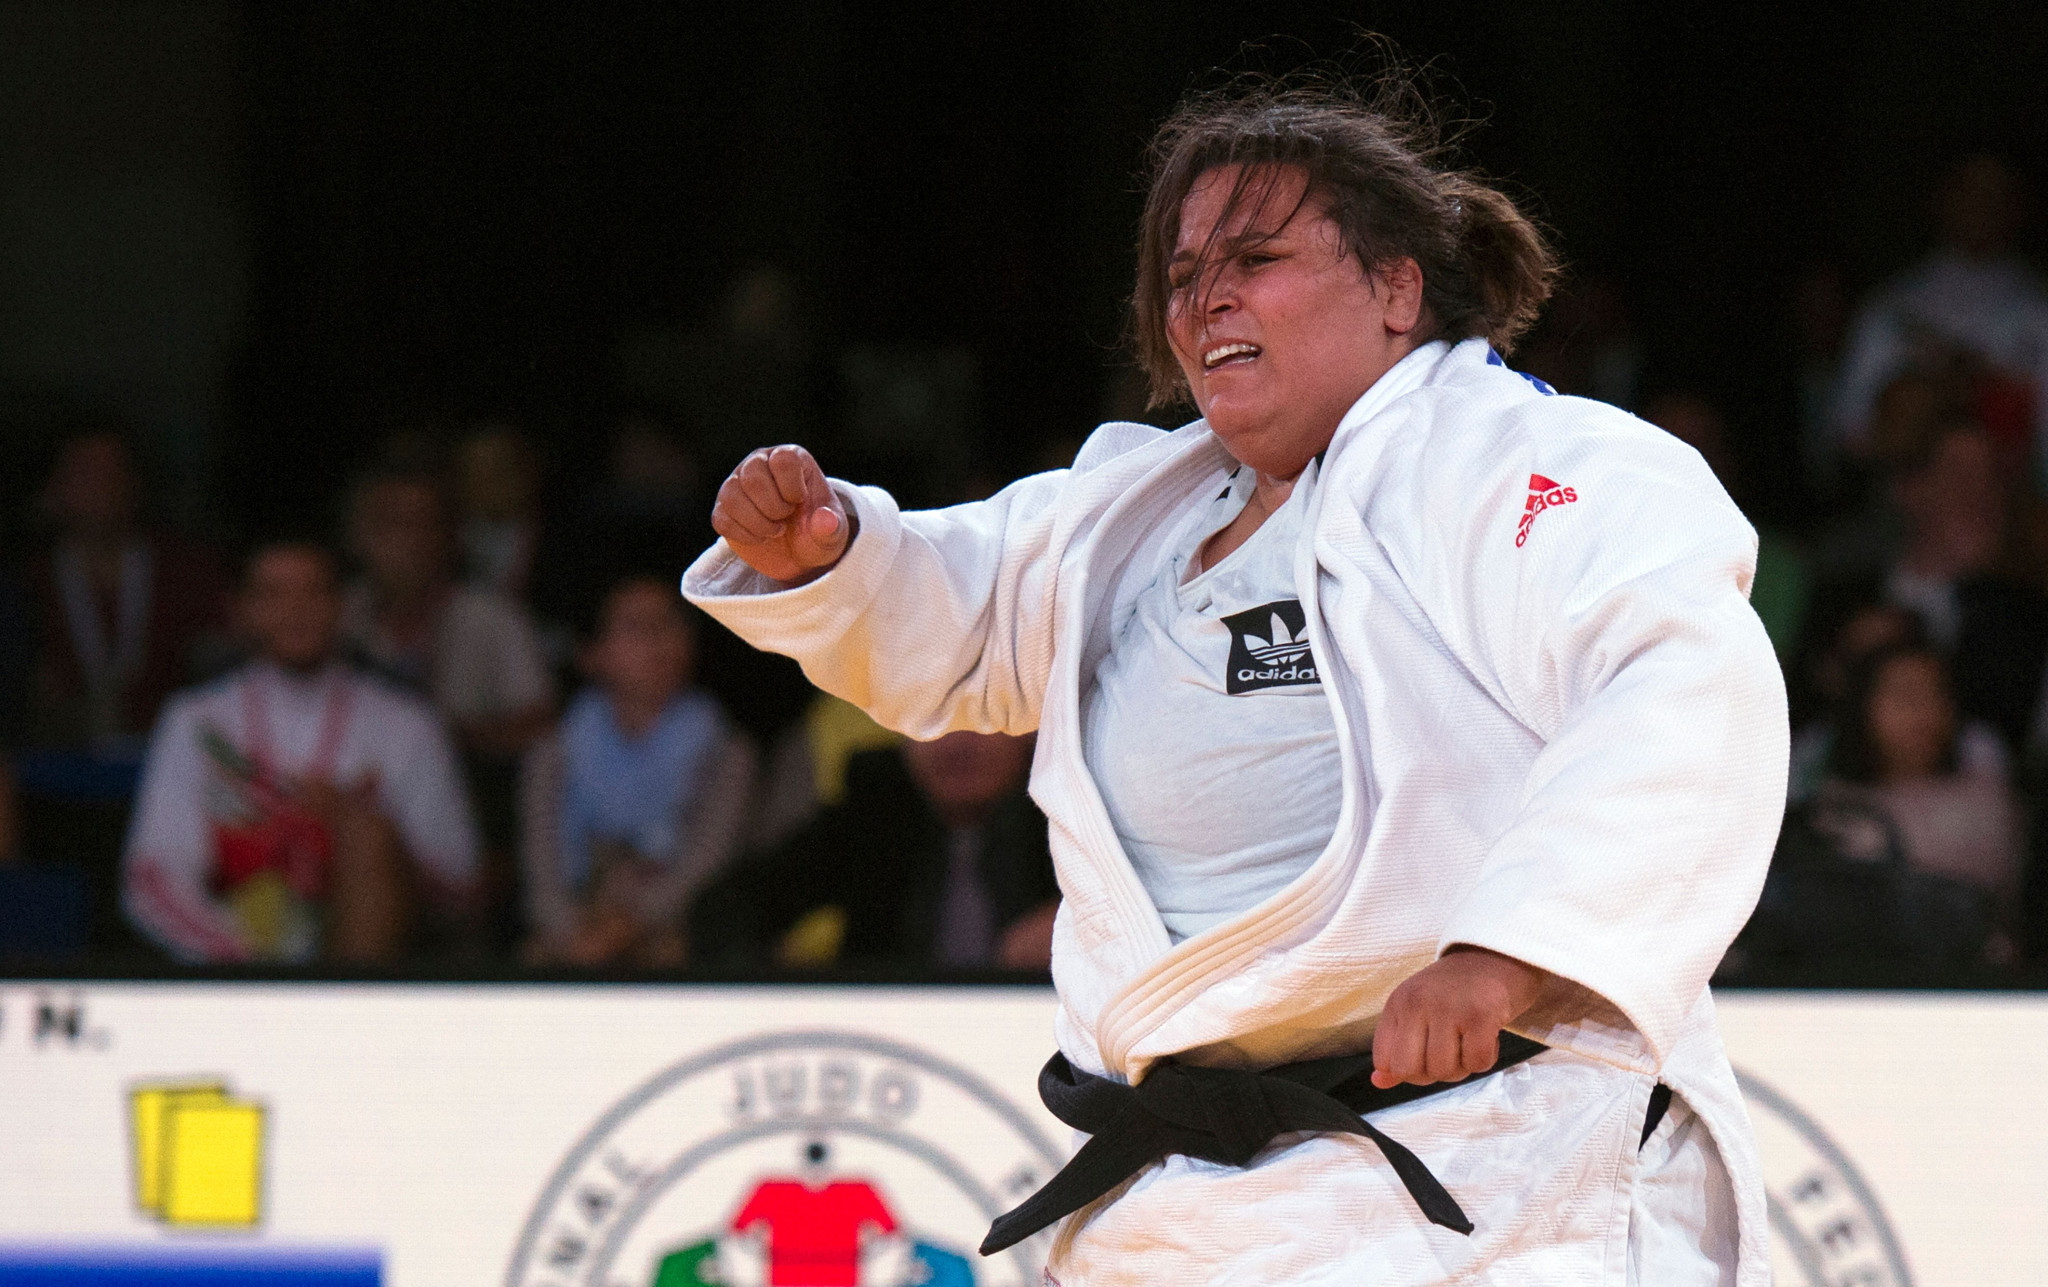 Two gold medals for host nation on opening day of African Judo Championships in Tunis